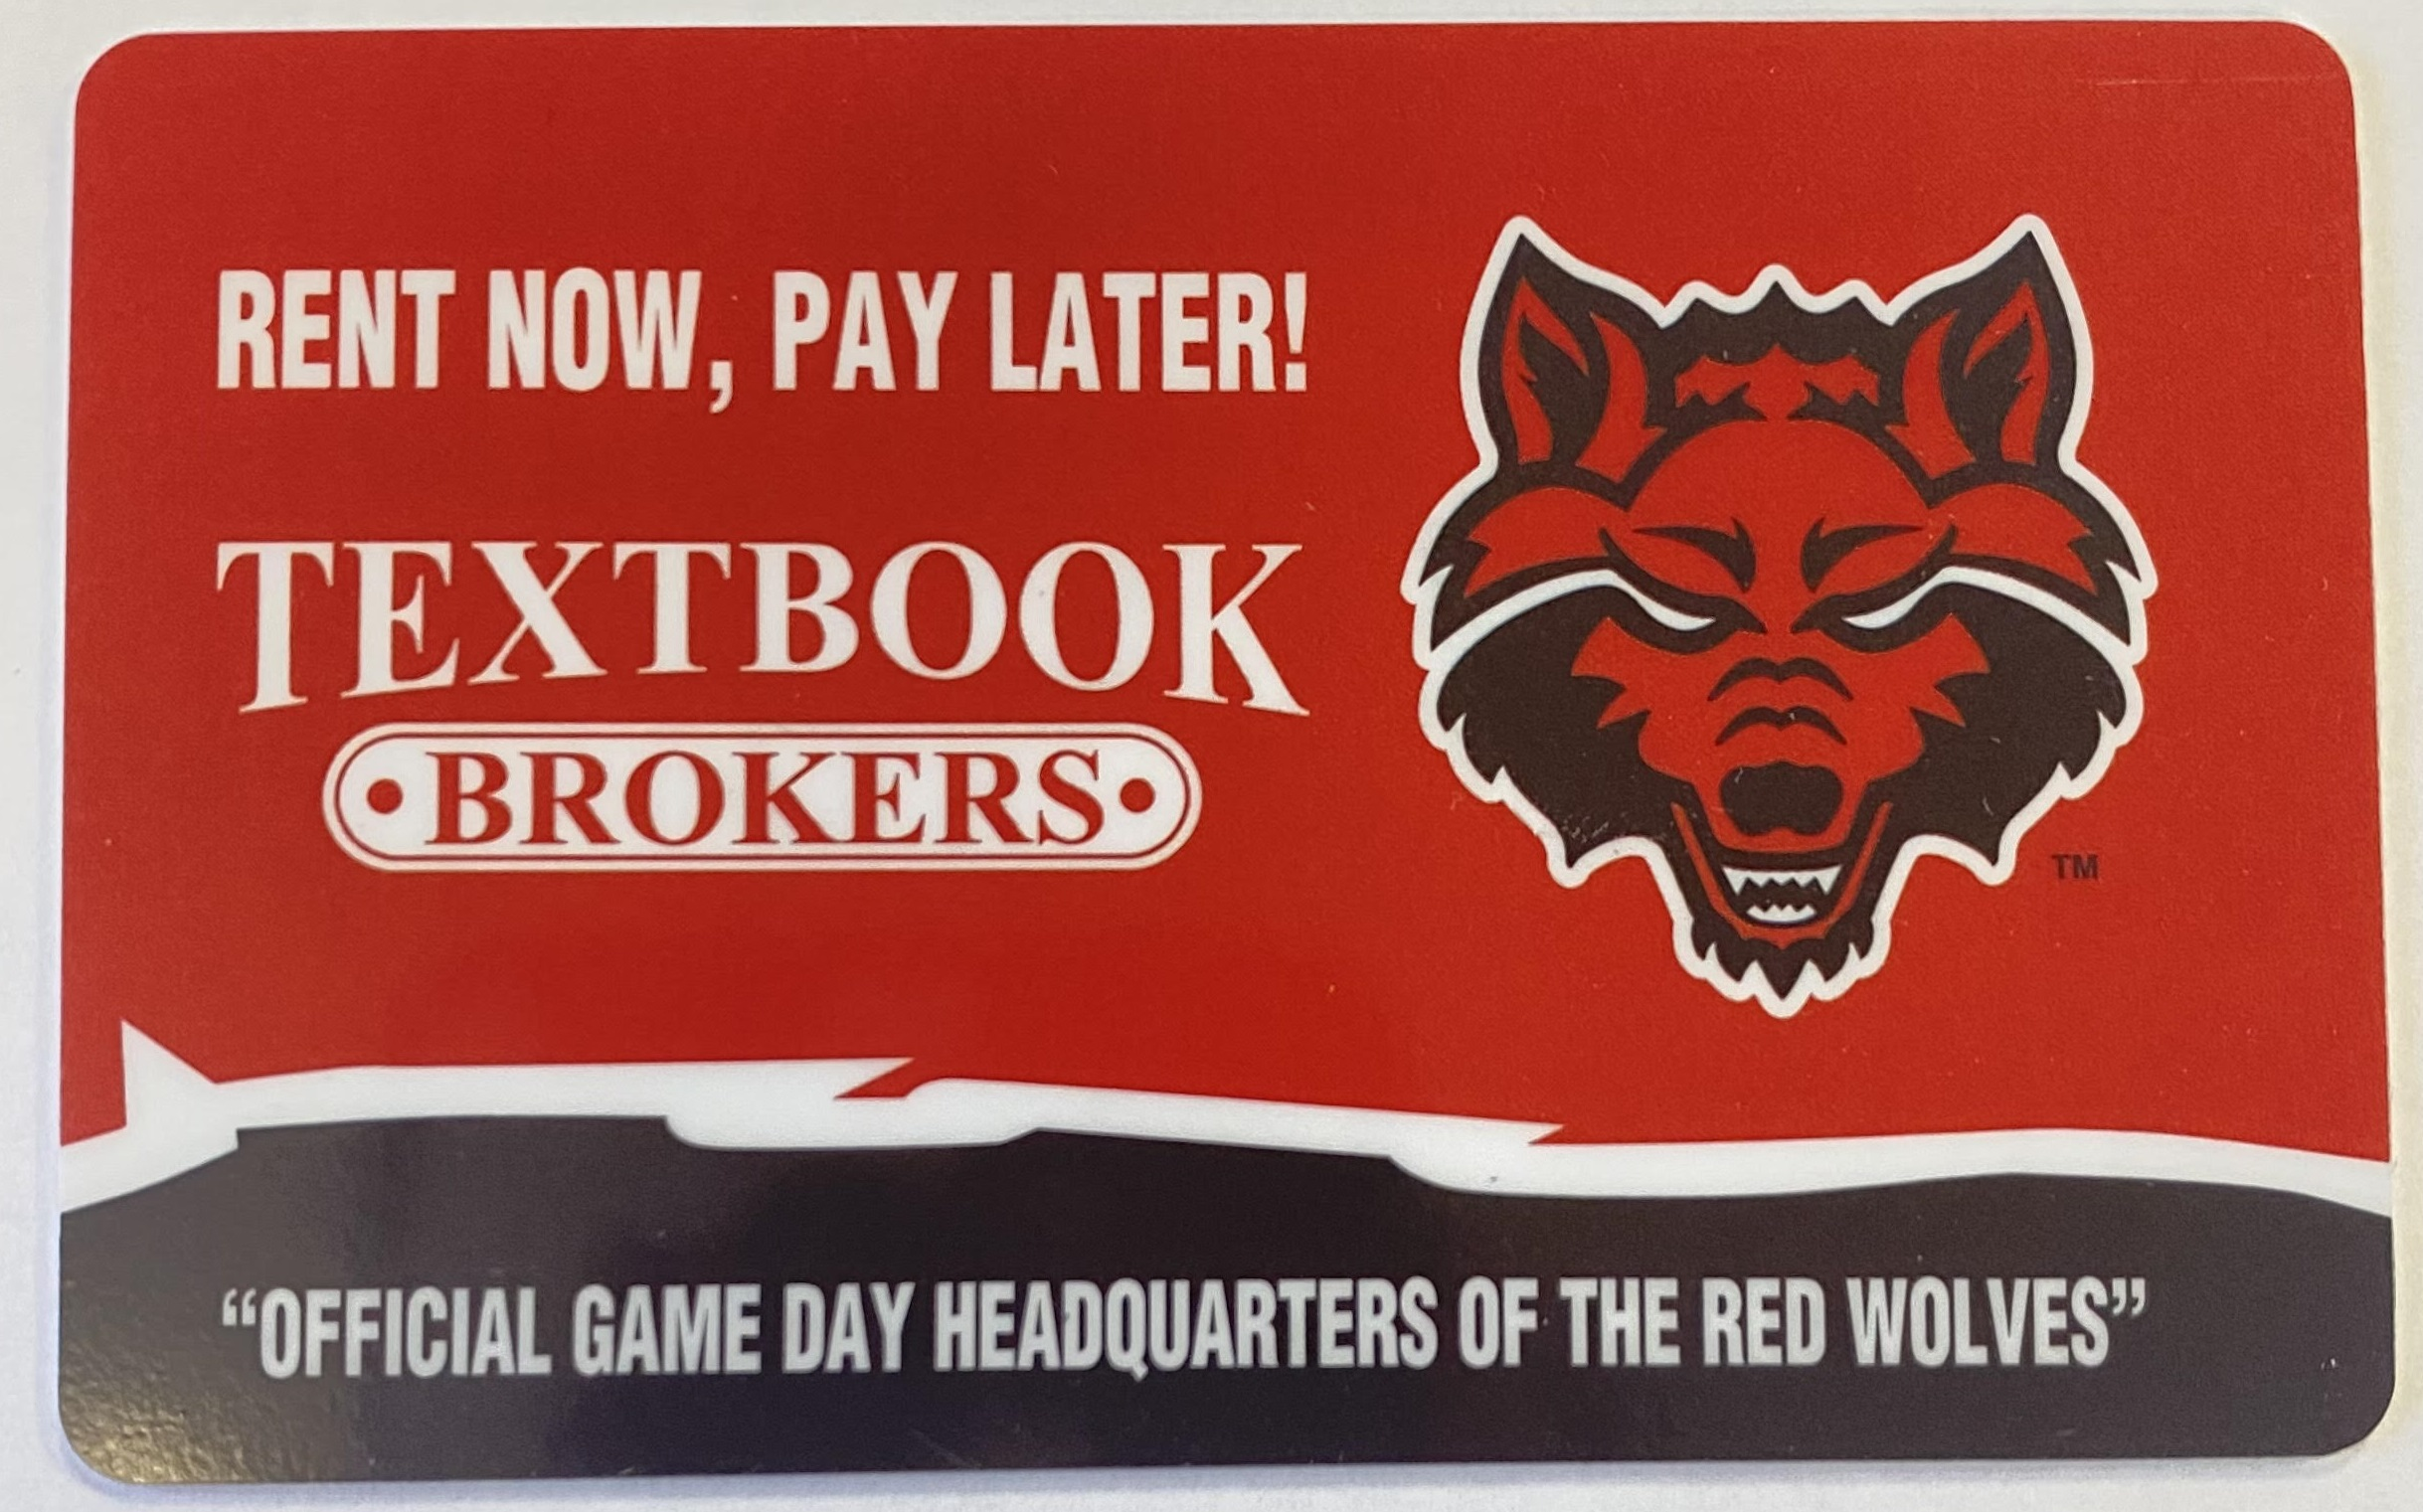 $10 Textbook Brokers Gift Card